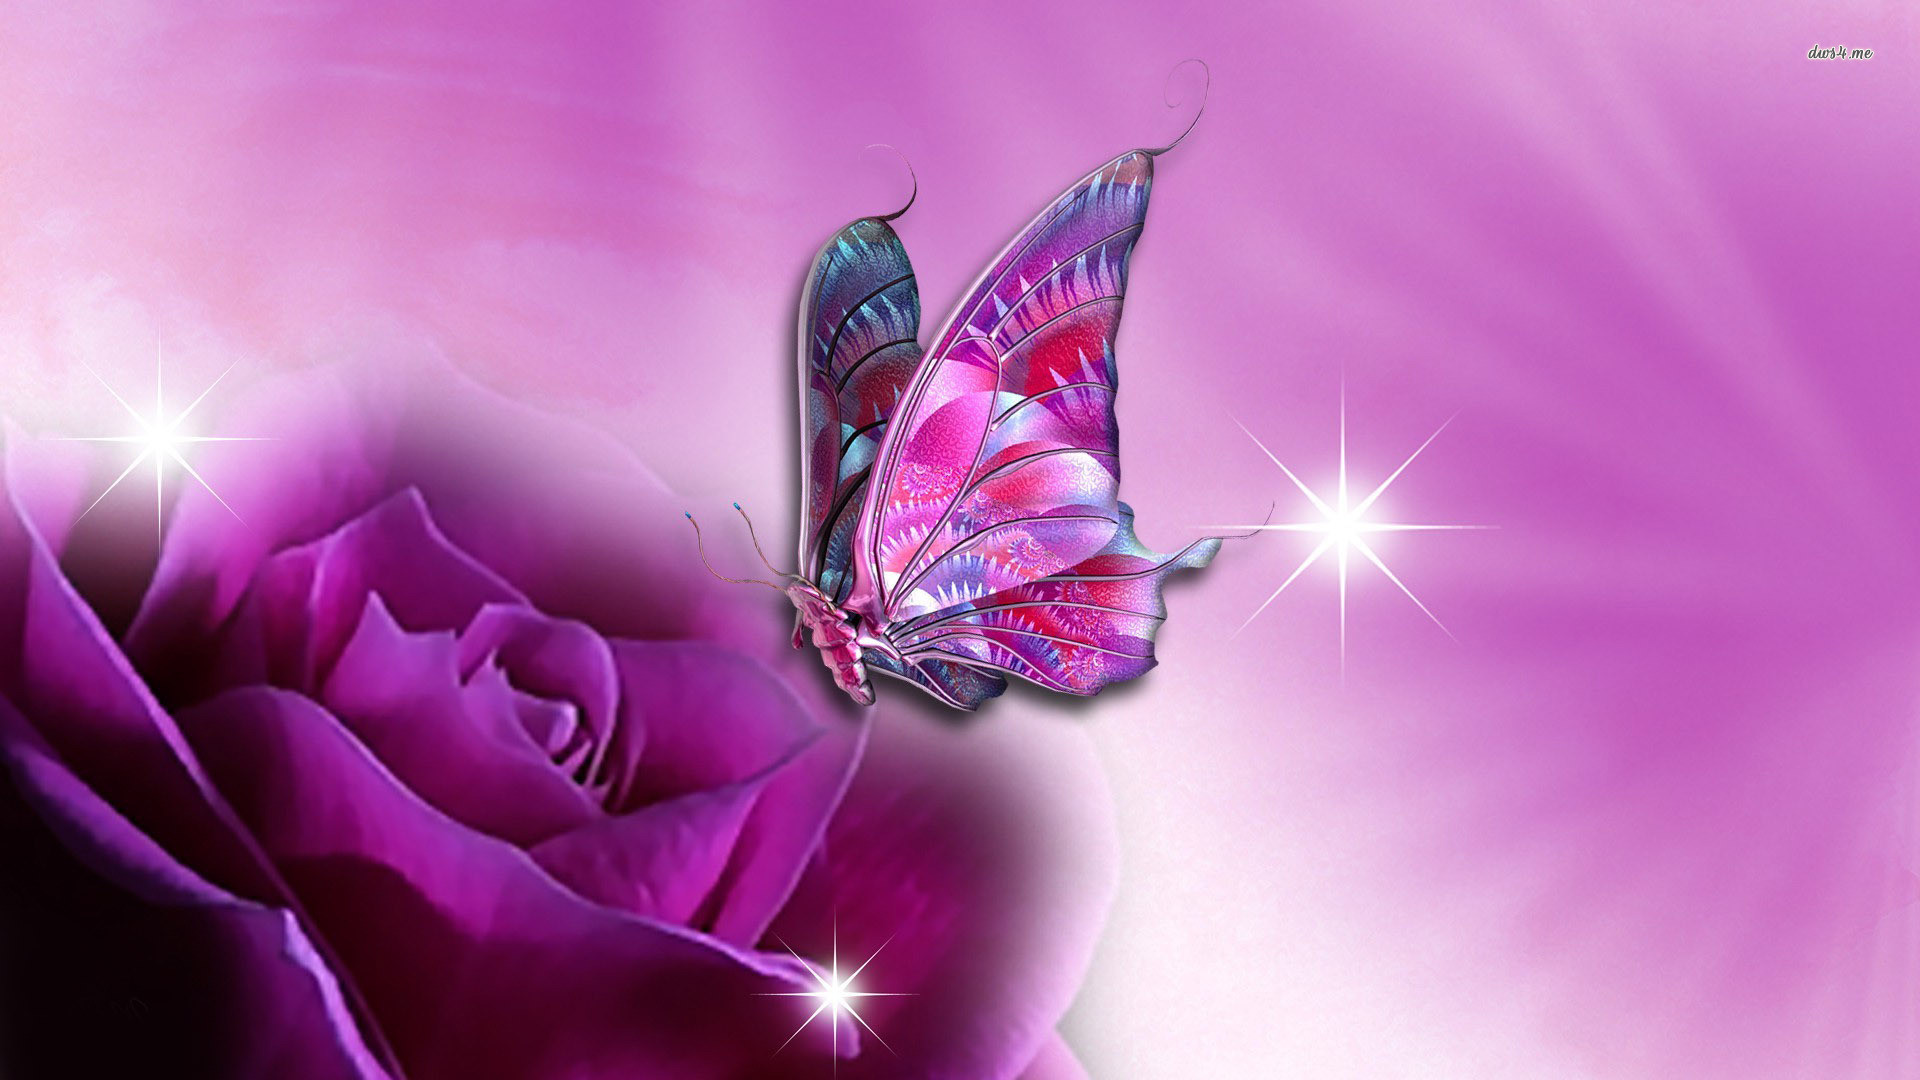 Res: 1920x1080, ... Butterfly on purple rose wallpaper  ...